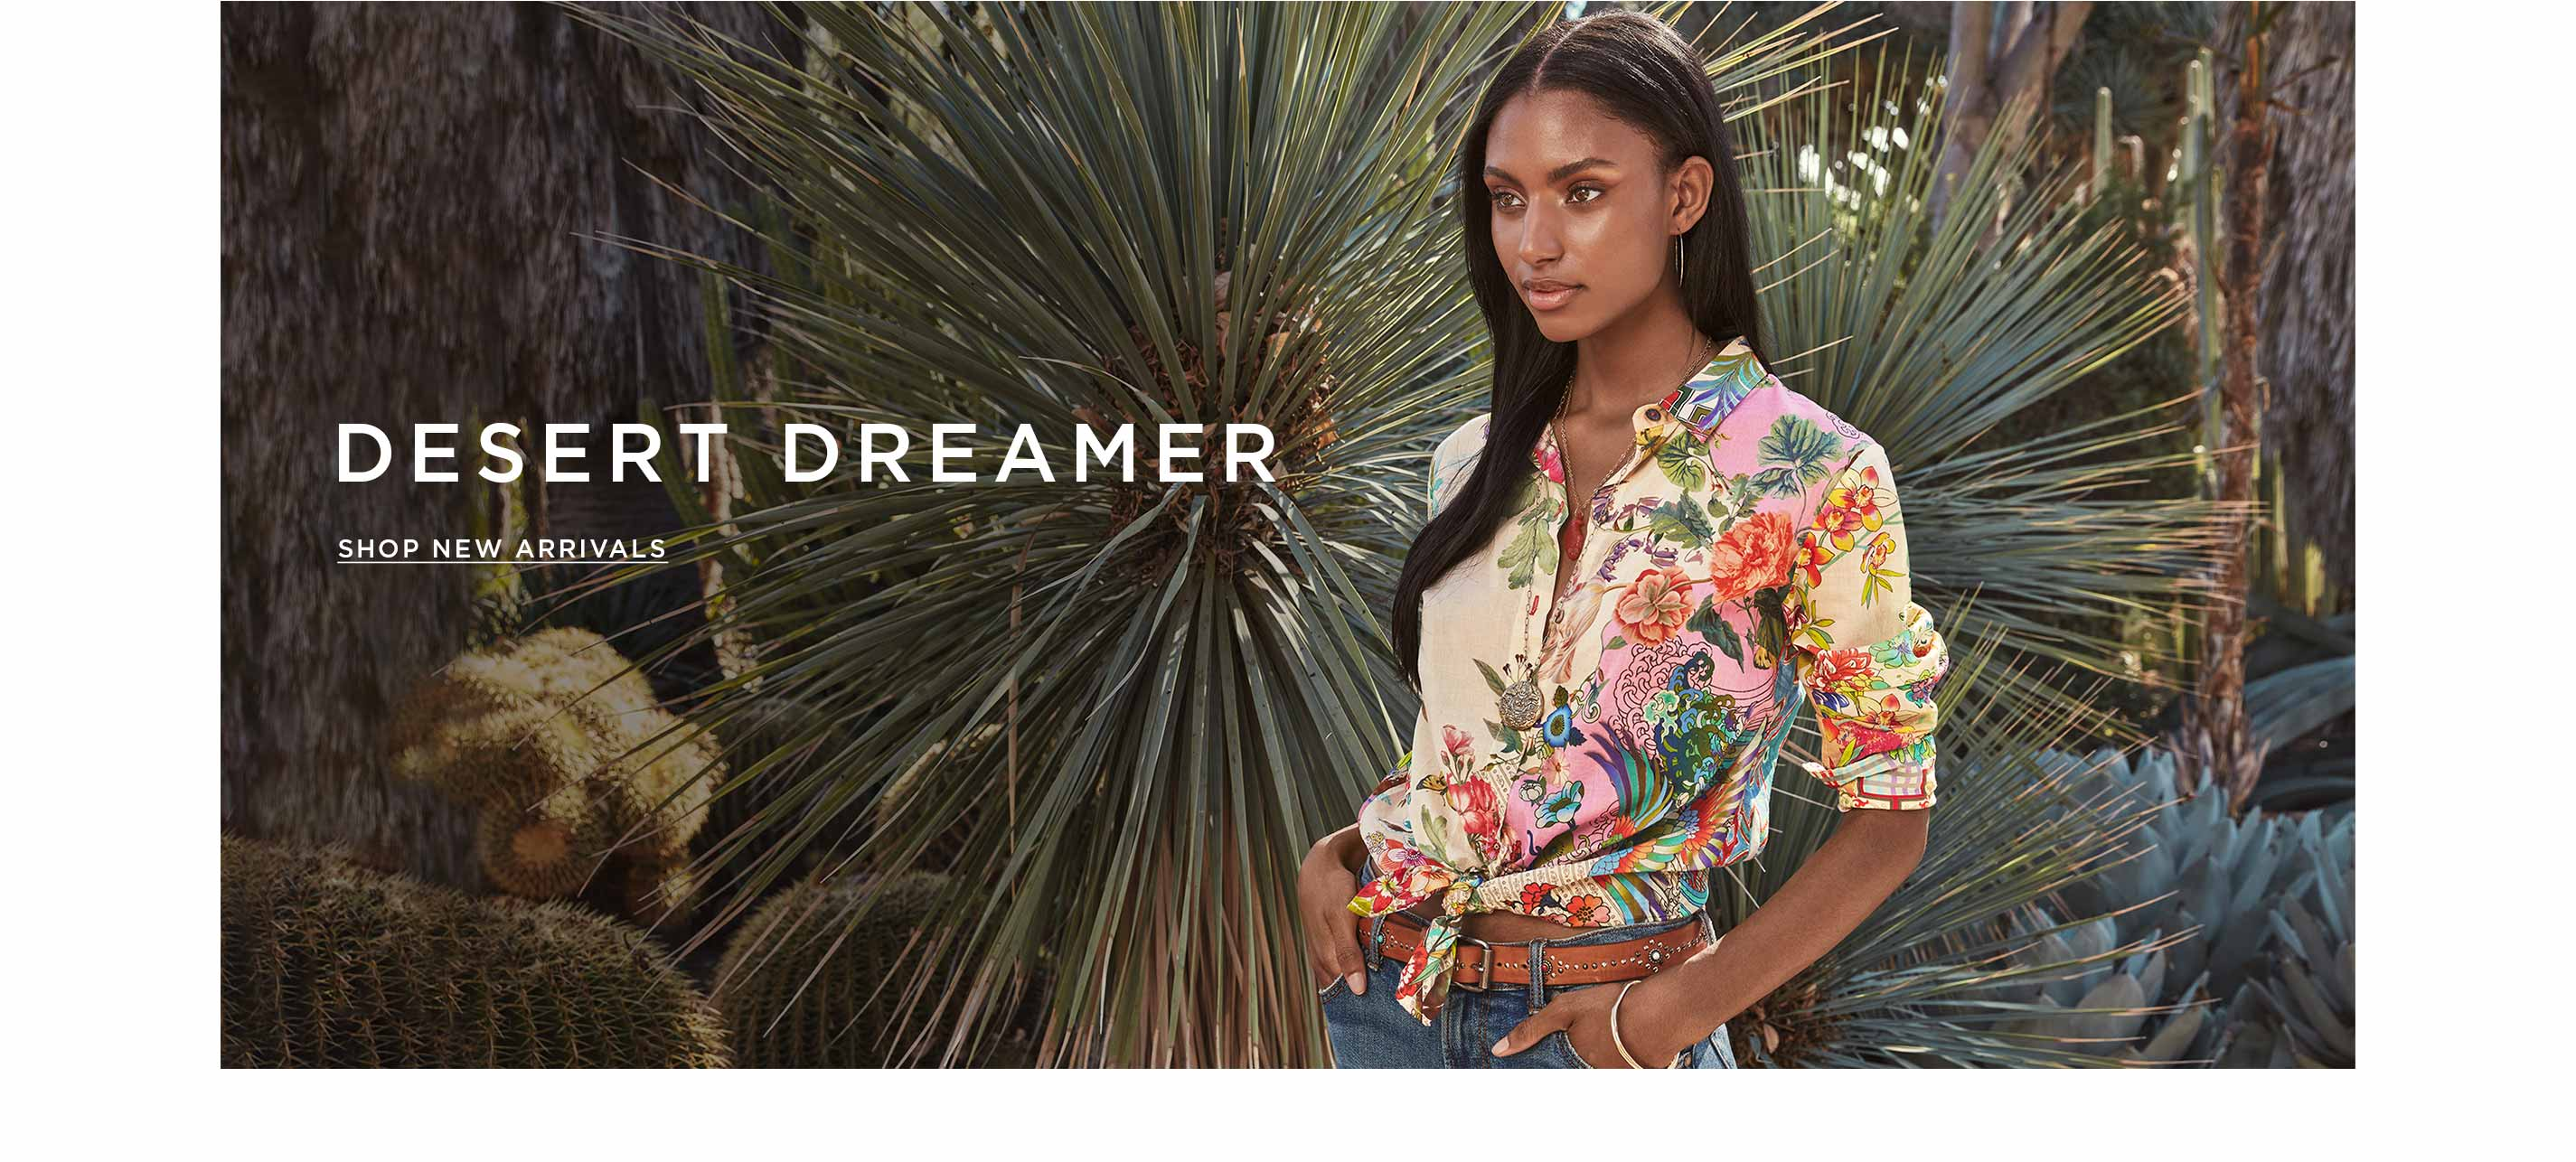 Desert Dreamer - Shop New Arrivals